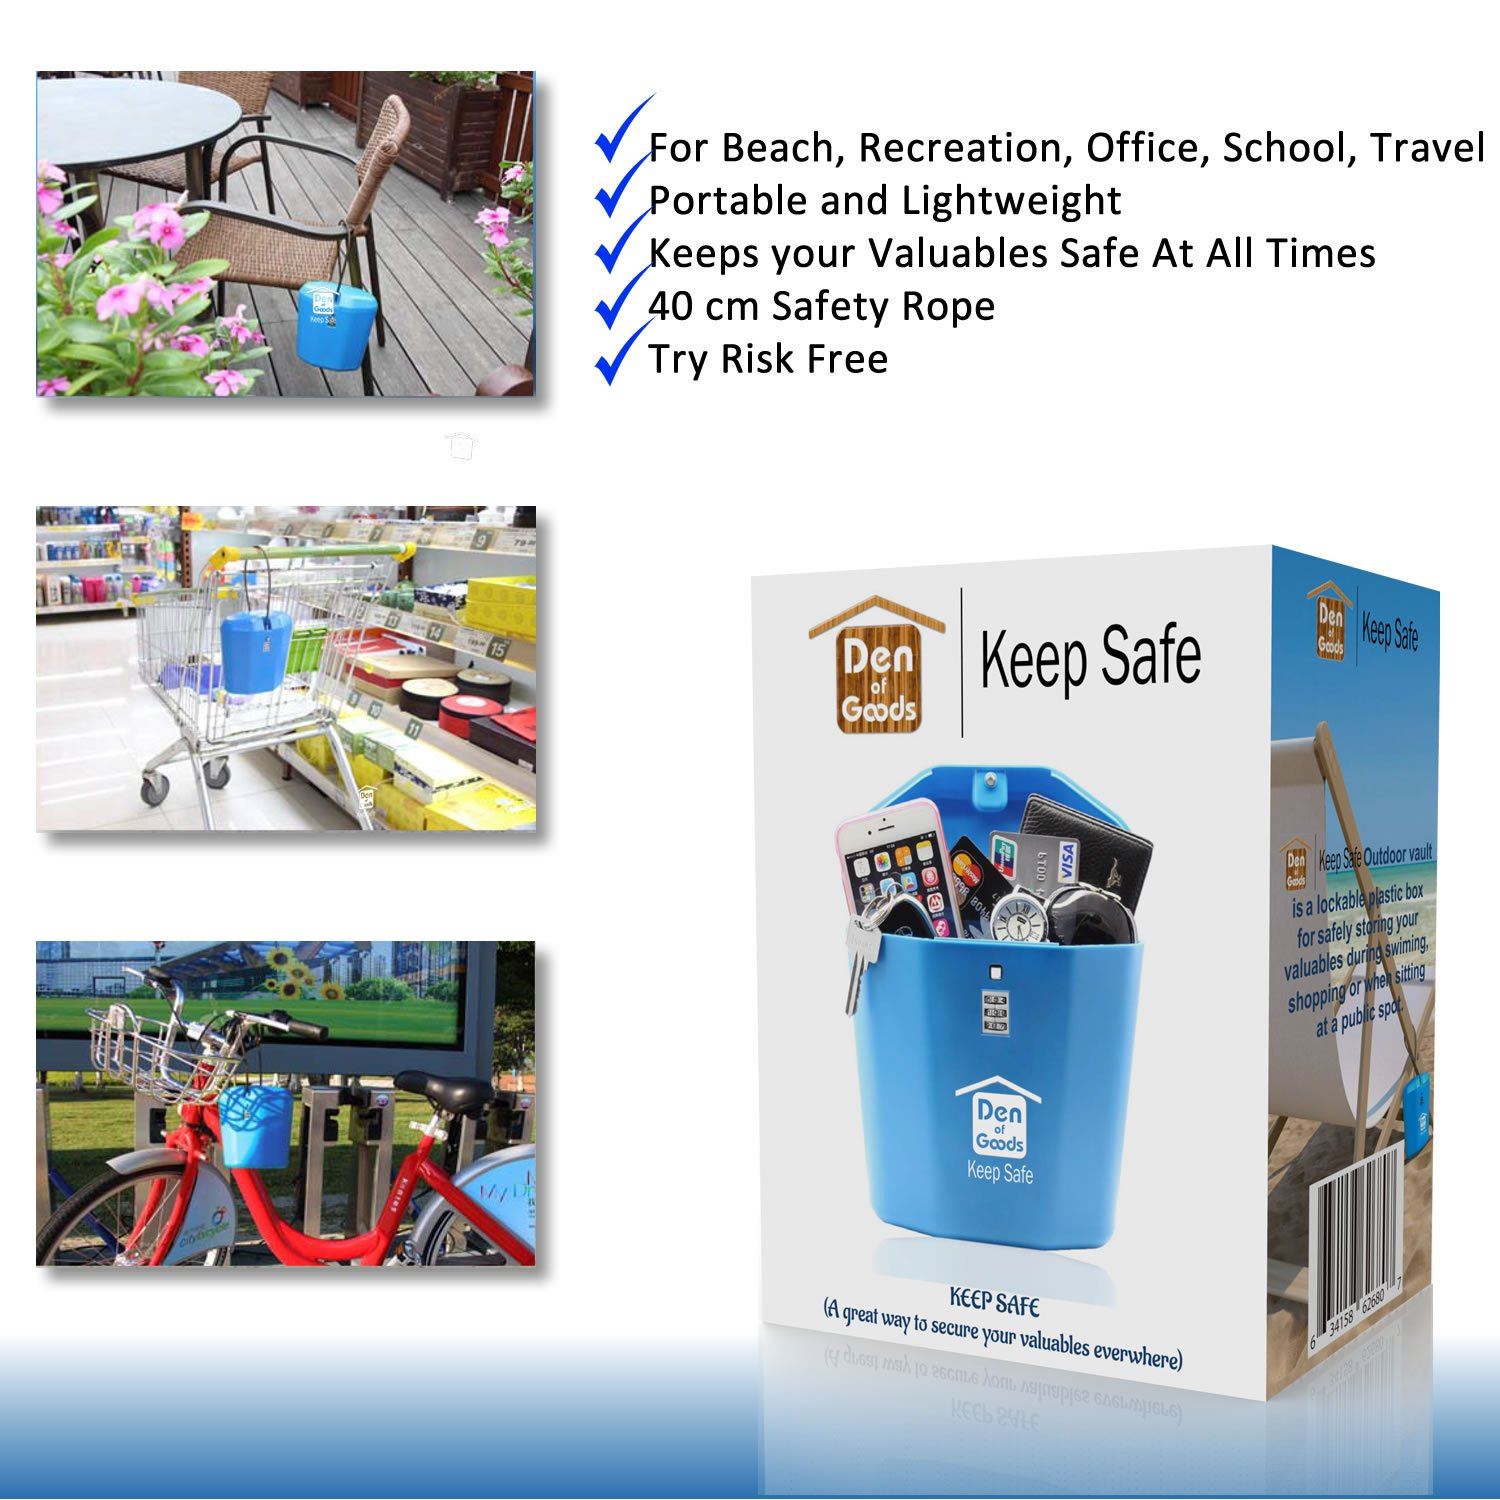 Keep Safe Portable Travel Vault Lock Box  Gifts for Men  For Beach, Car,  Caravan, Camping, Sports, Travel, Shopping